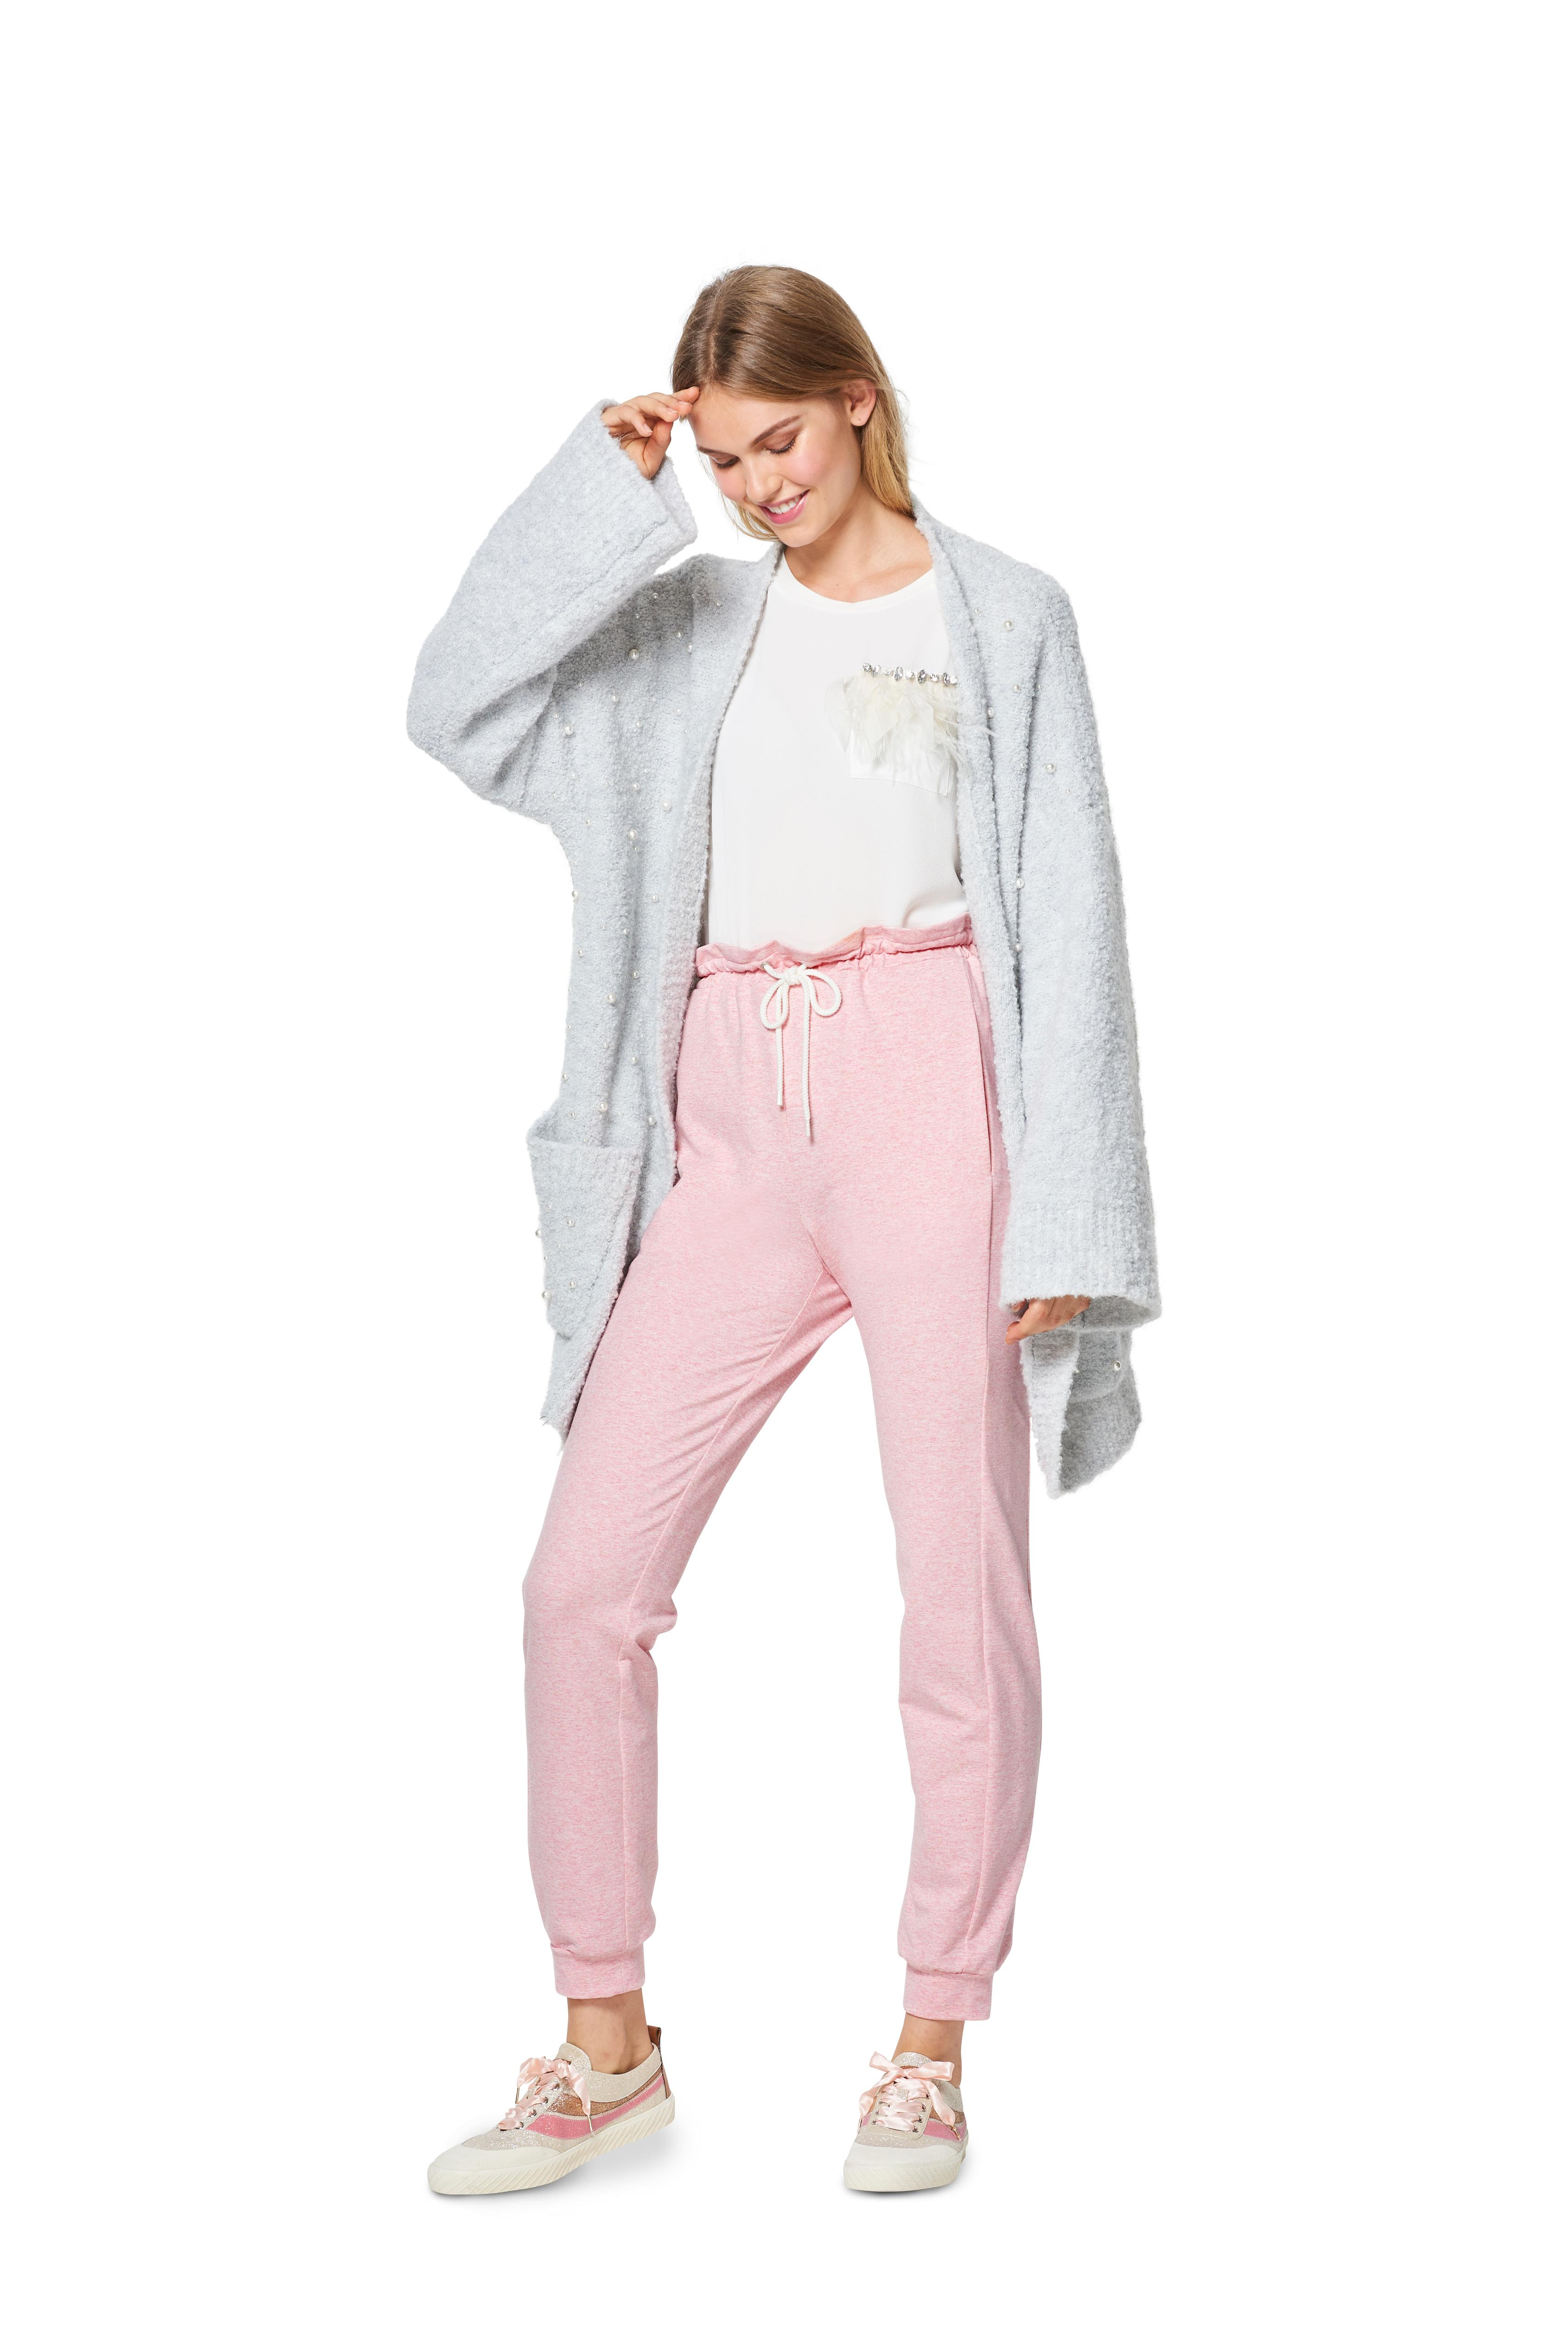 Burda 6317 Misses' jogging pull on pant